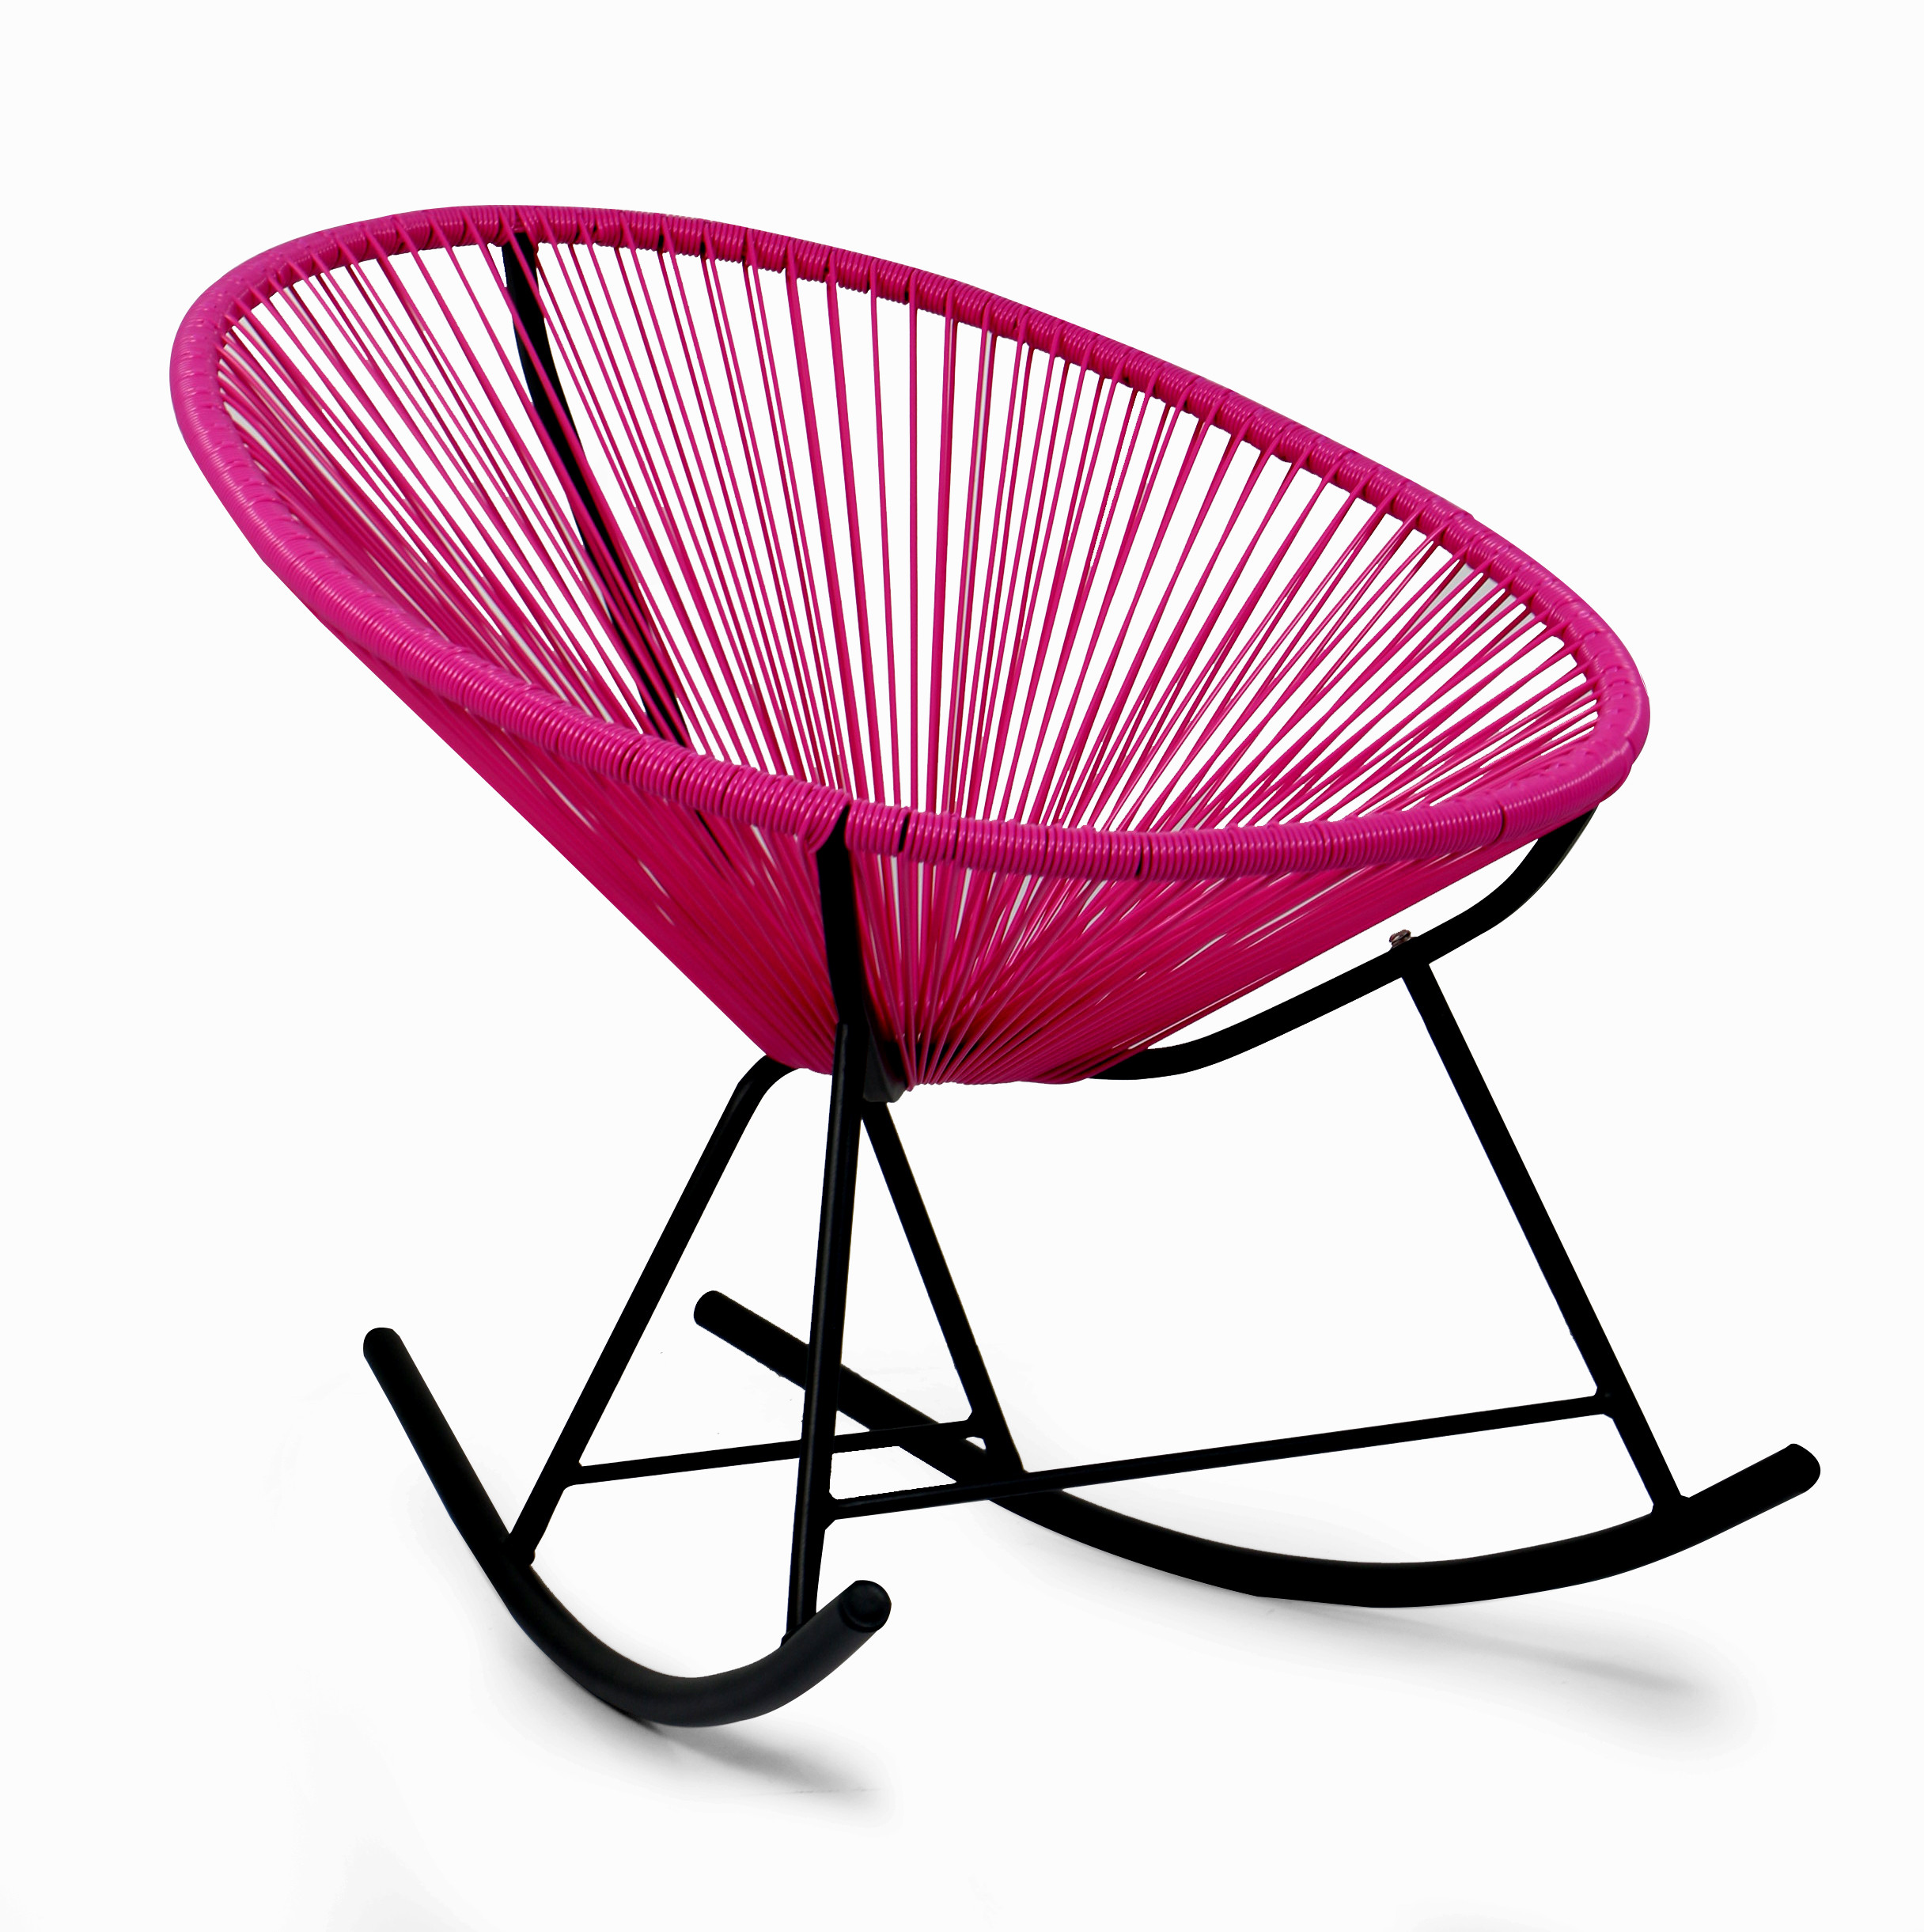 Fuchsia Peony Patio Rocking Chair Furniture & Home Décor